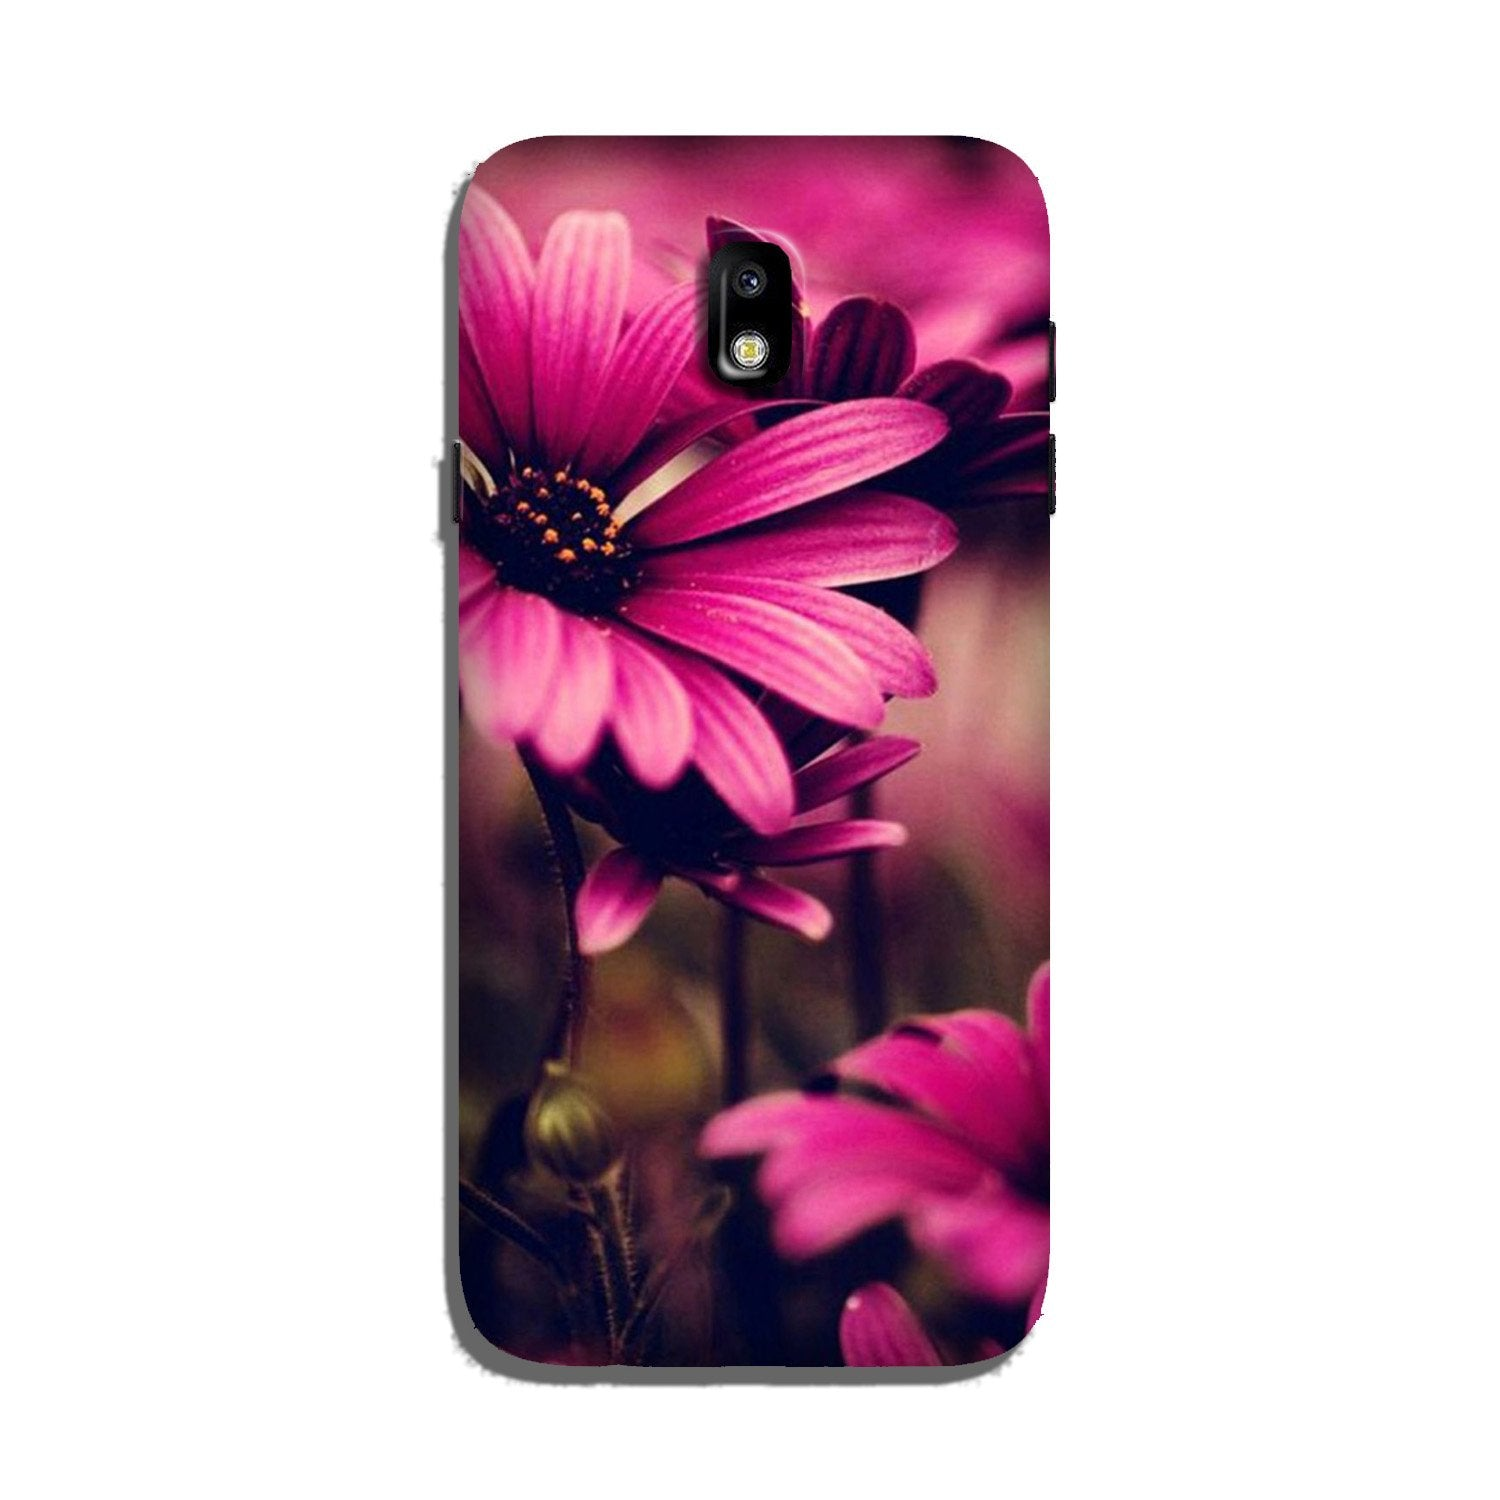 Purple Daisy Case for Galaxy J5 Pro